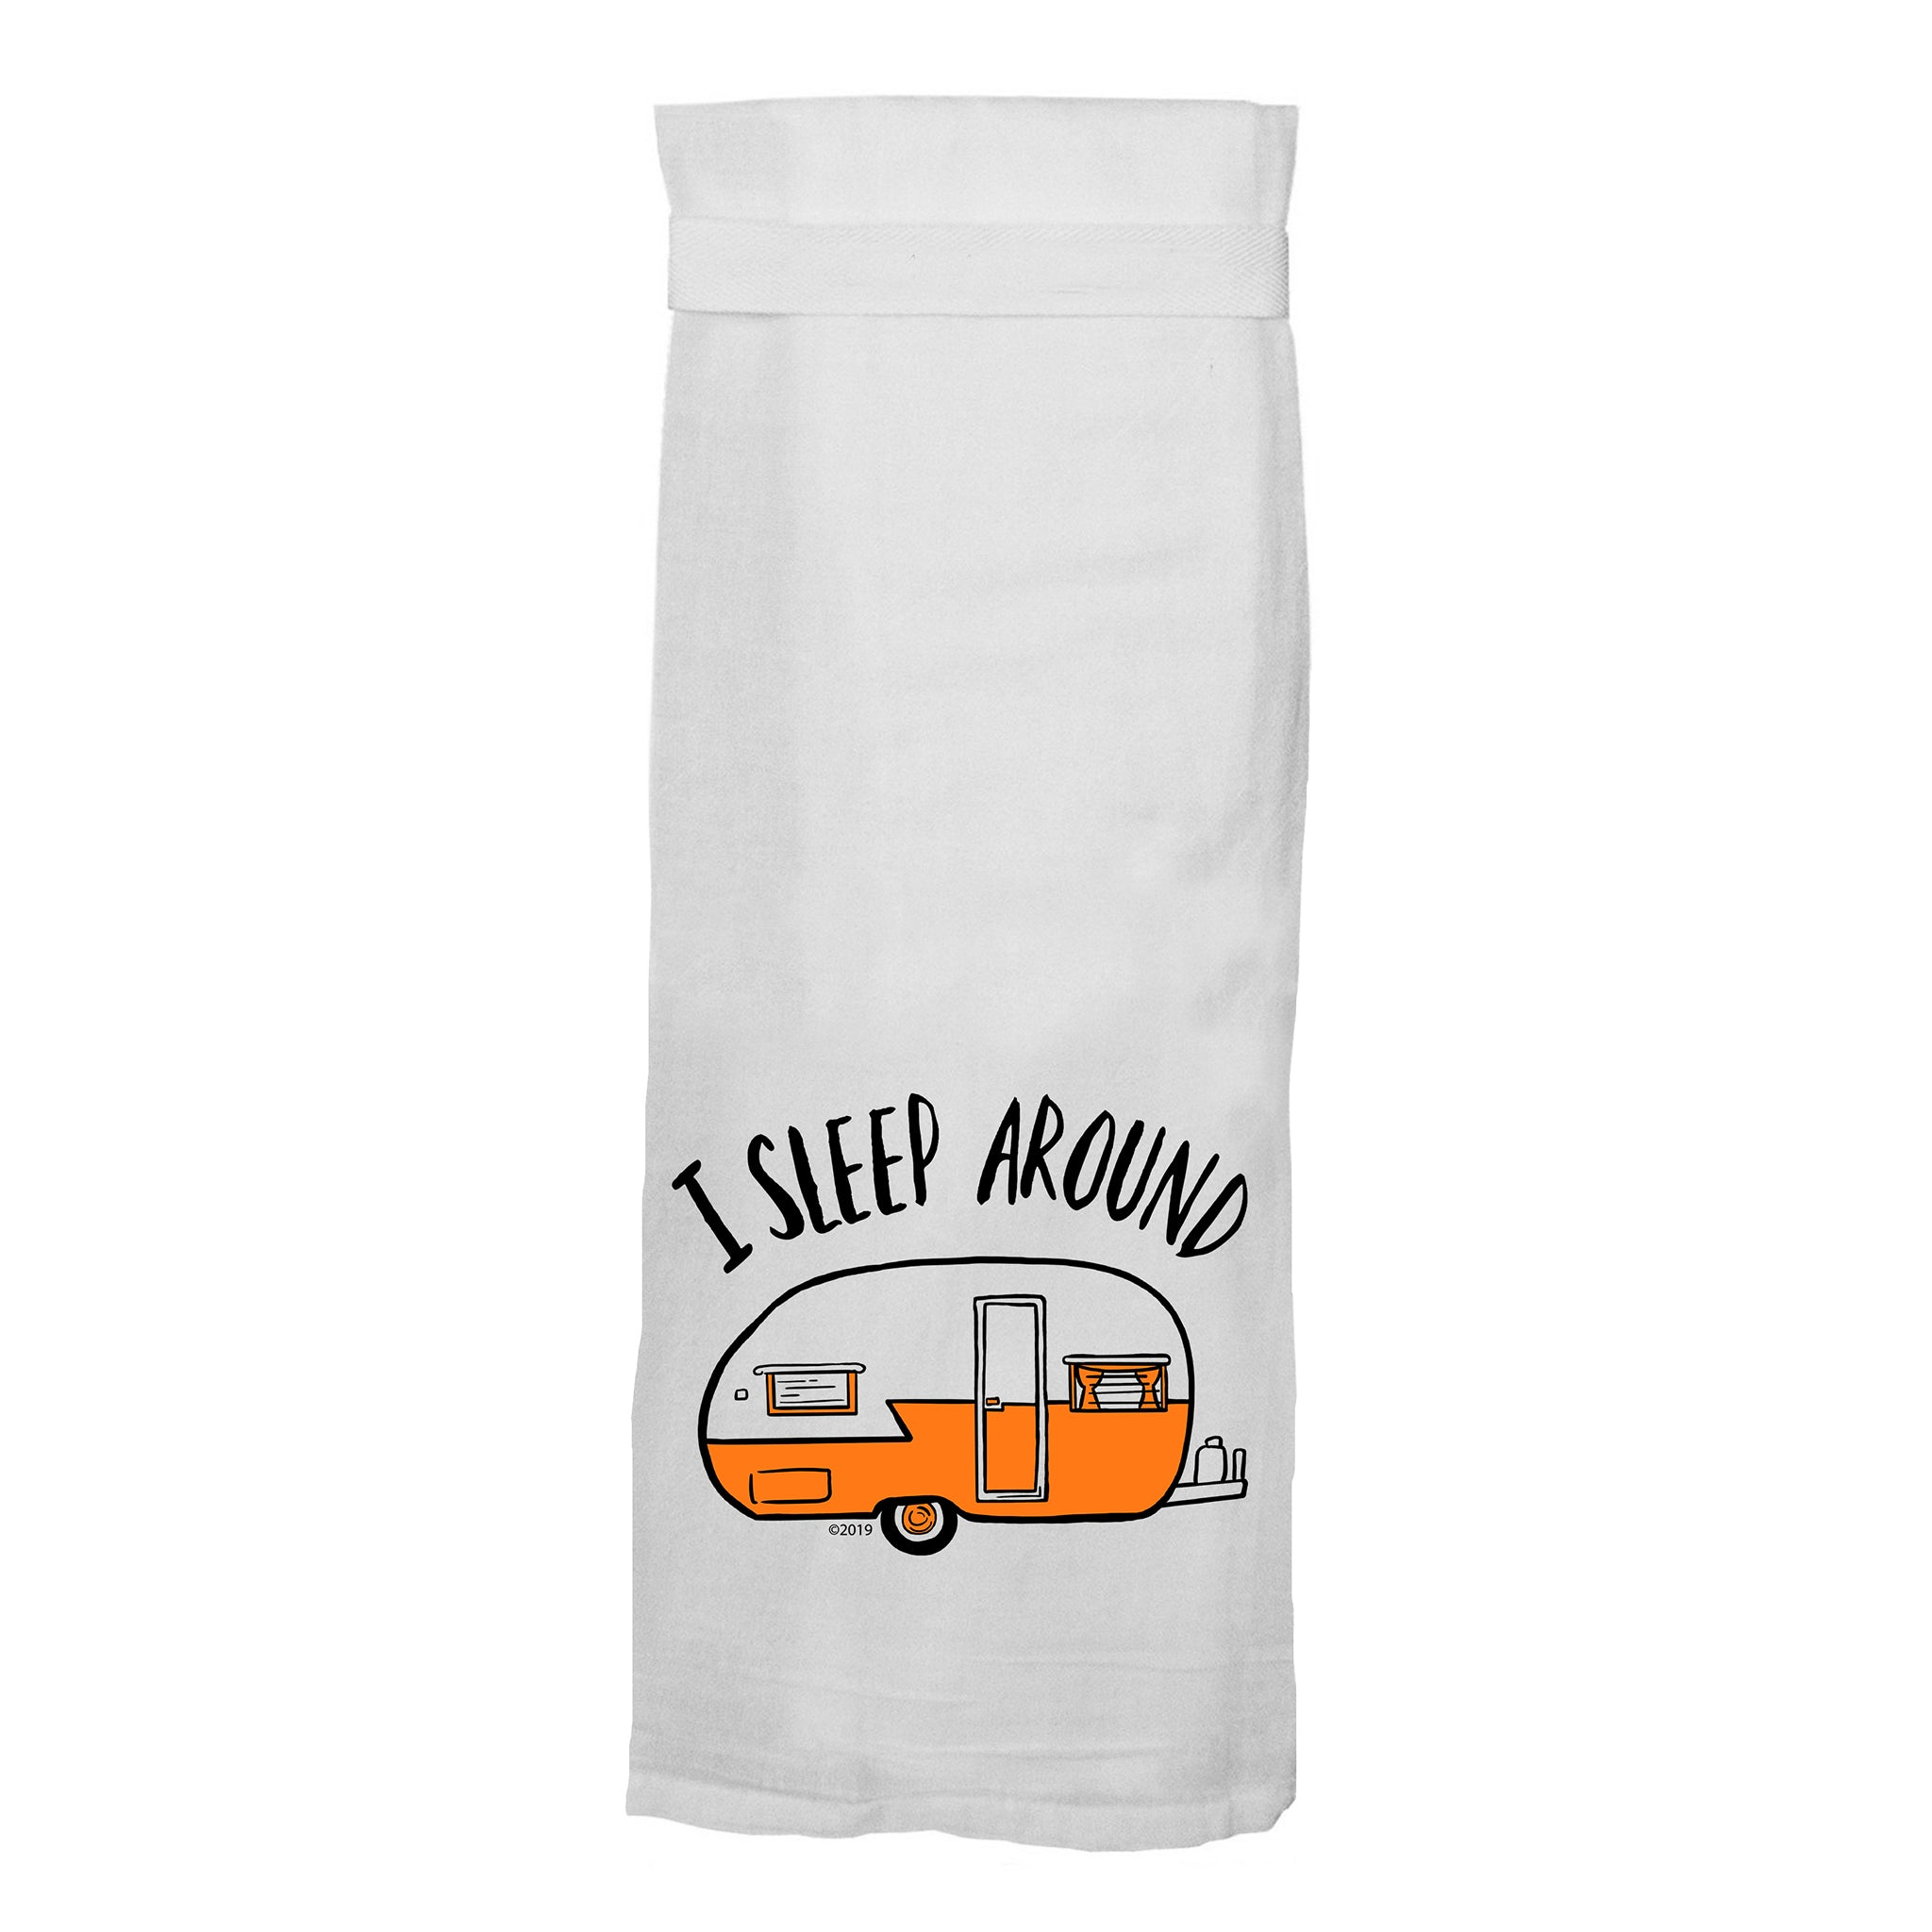 I Sleep Around Flour Sack Hang Tight Towel®